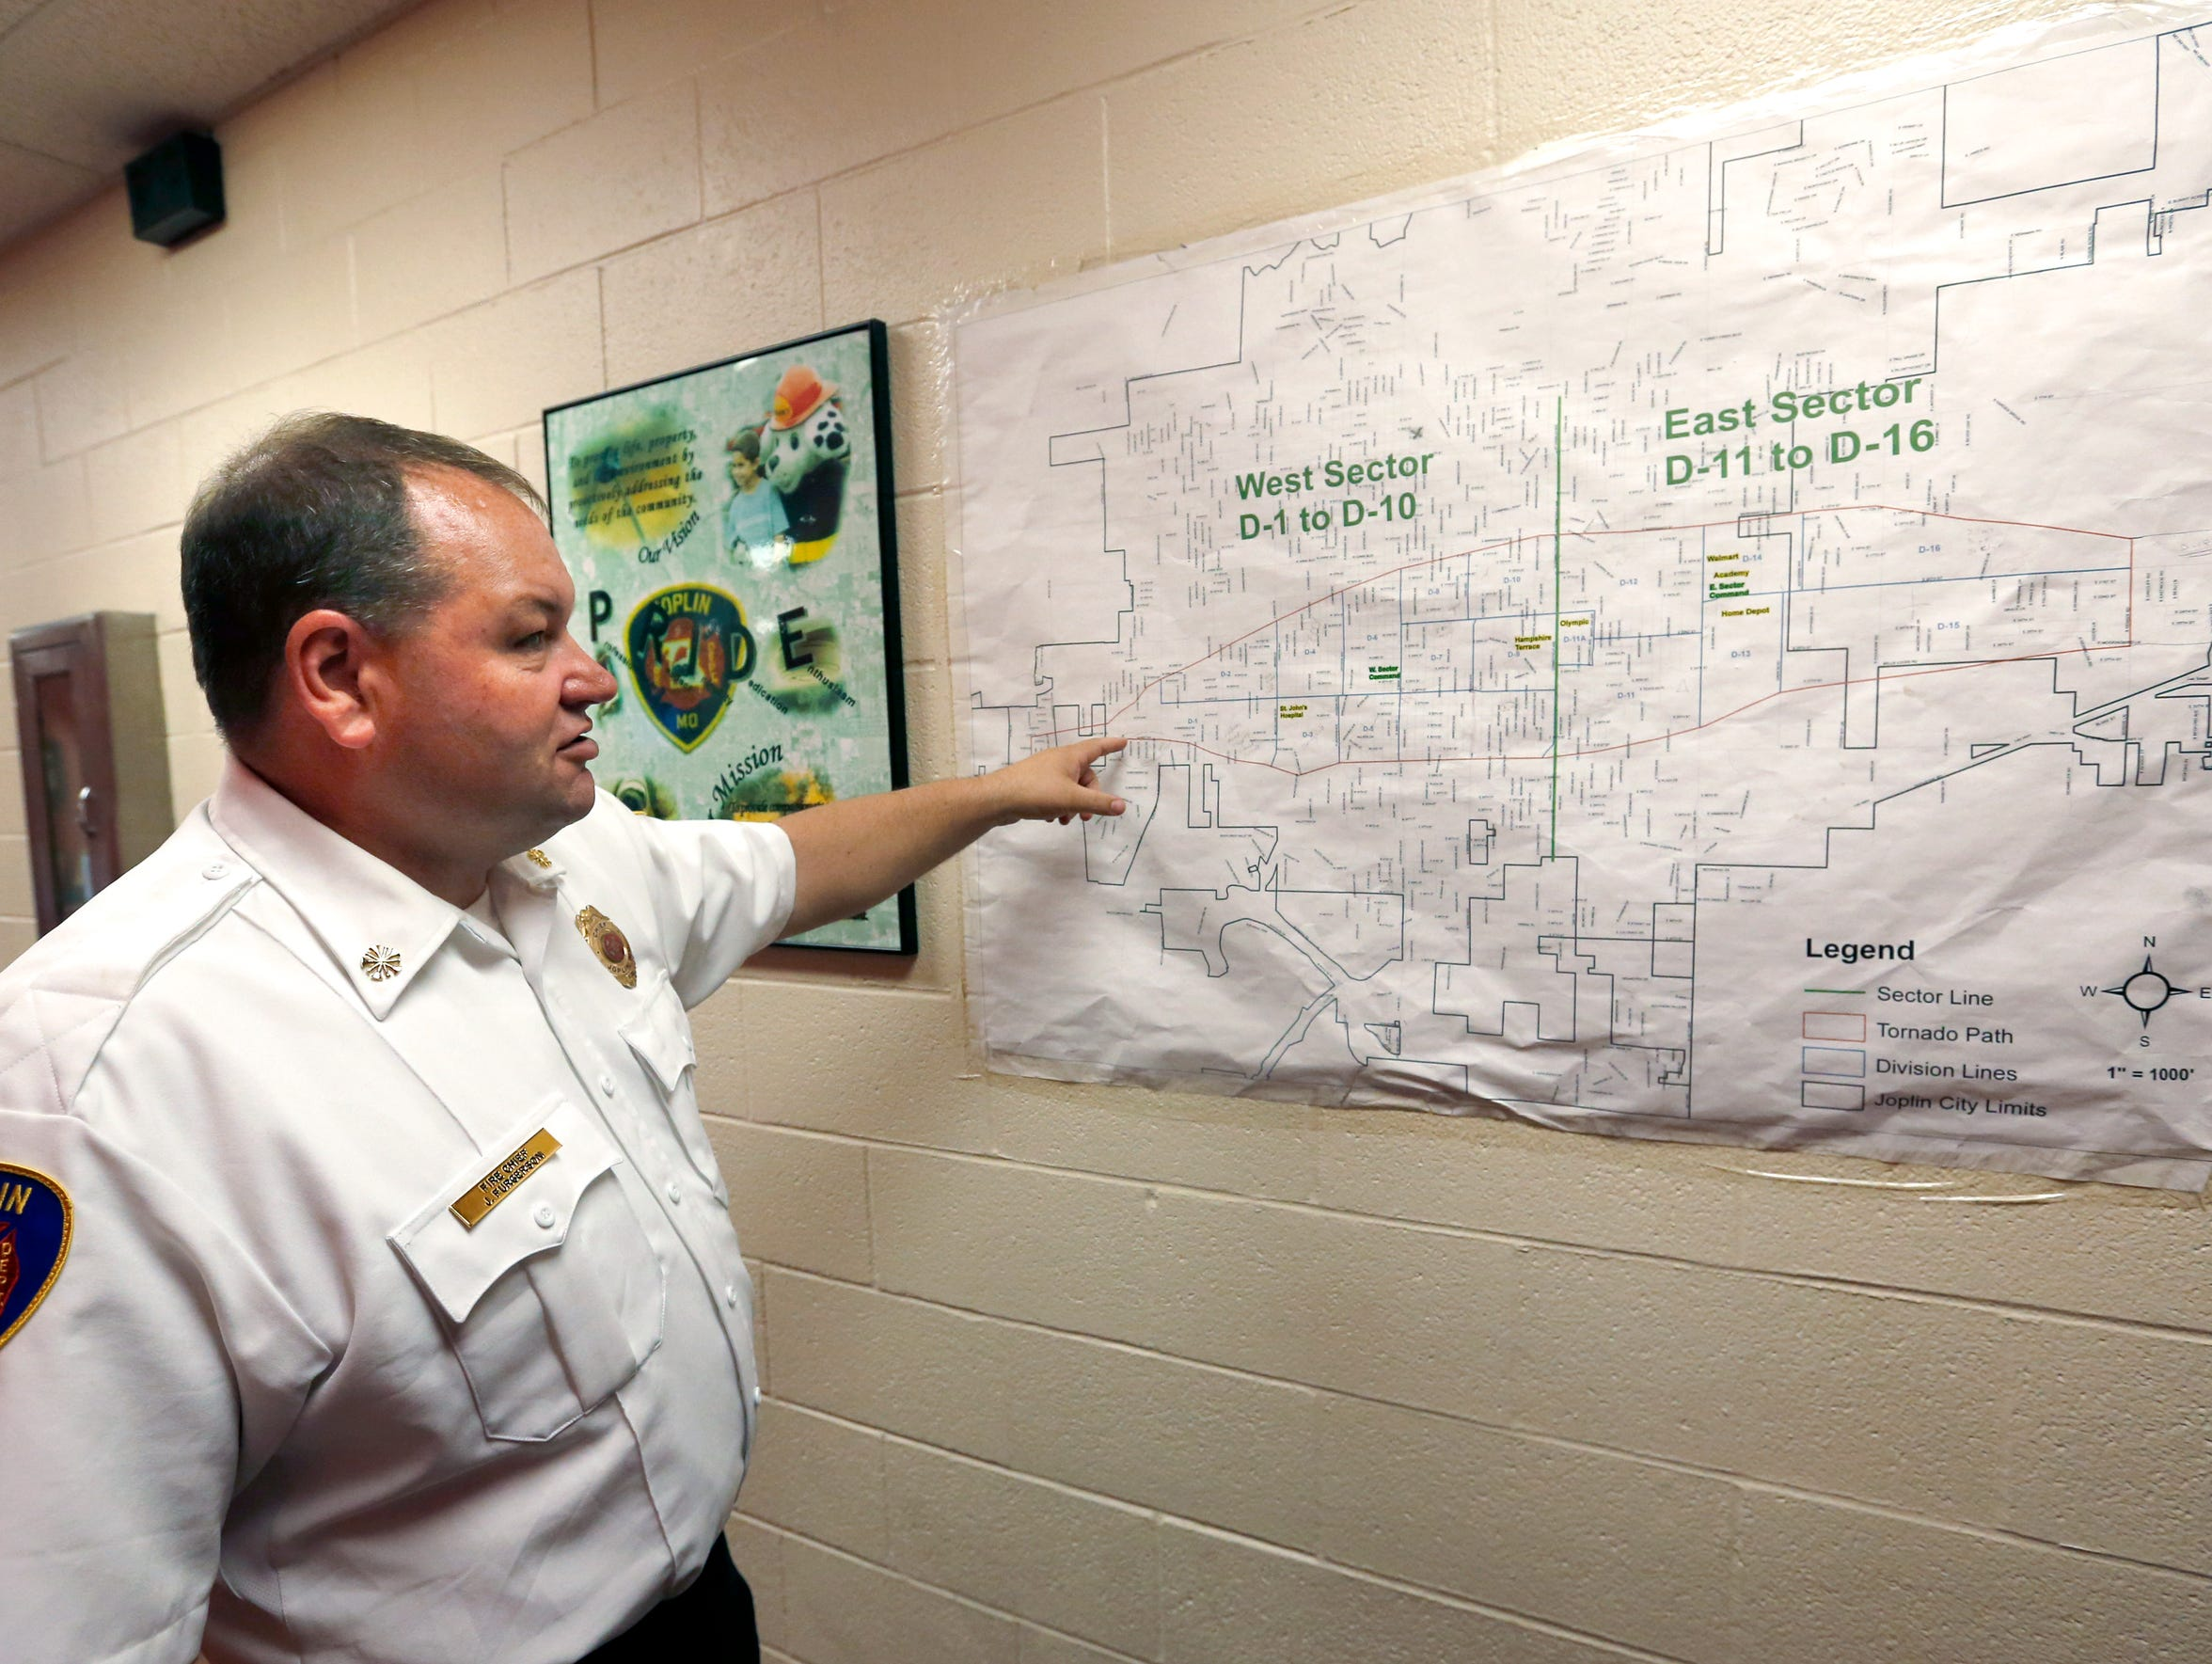 Joplin Fire Department Chief James Furgerson shows